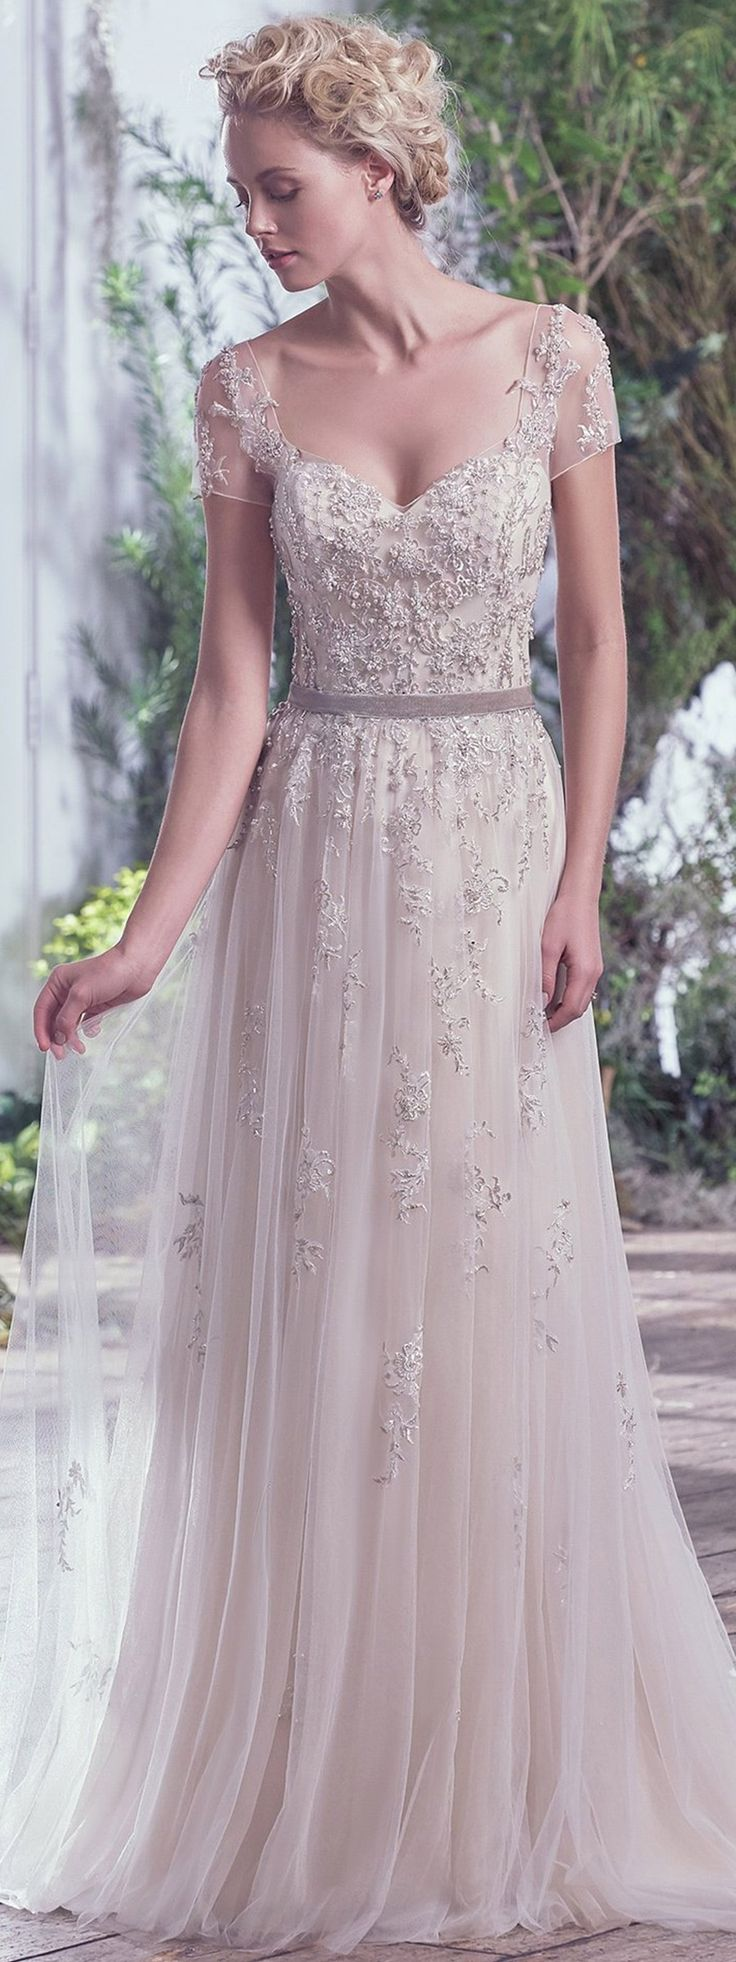 17 best ideas about embroidered wedding dresses on for Romantic ethereal wedding dresses